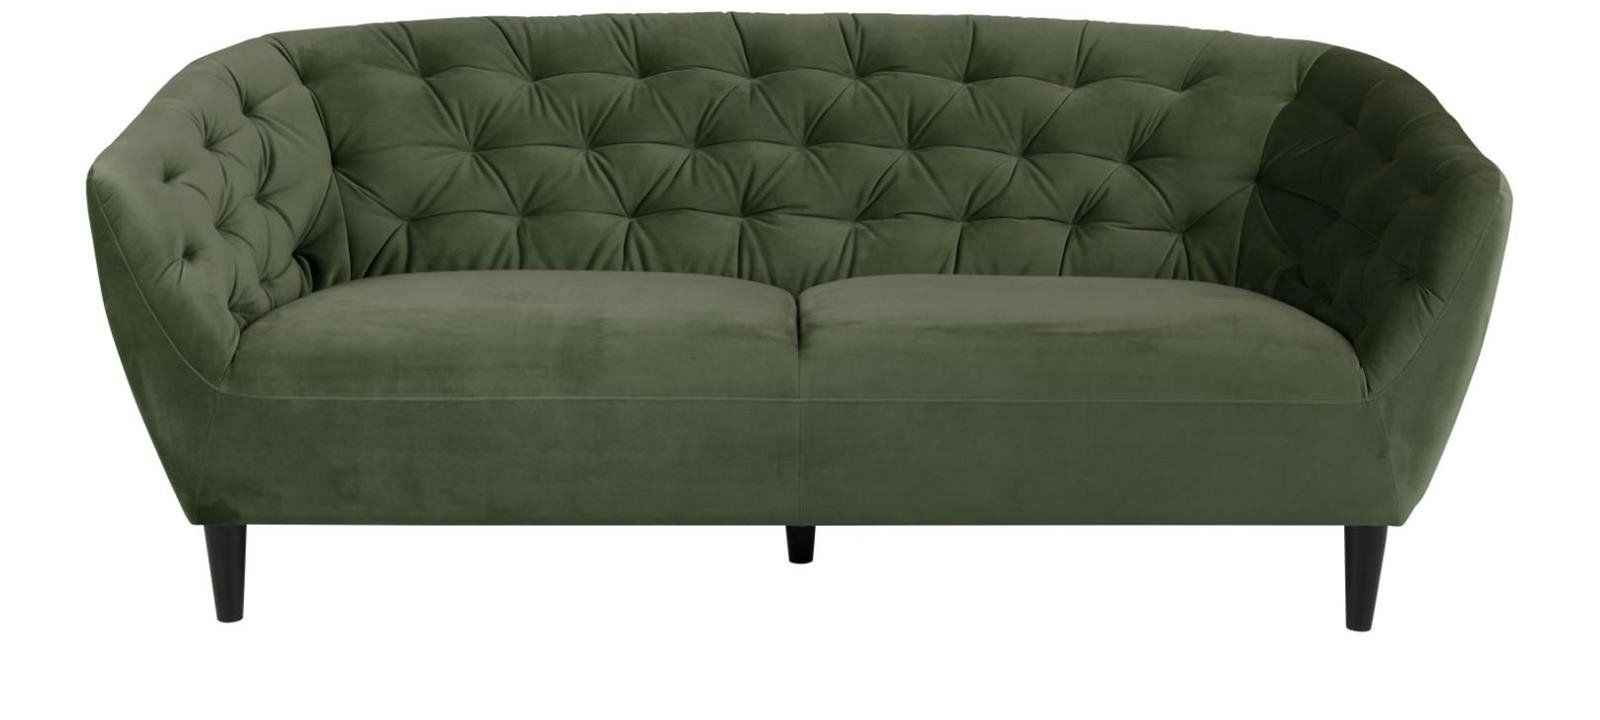 Sofa 3osobowa Ria Velvet forest green